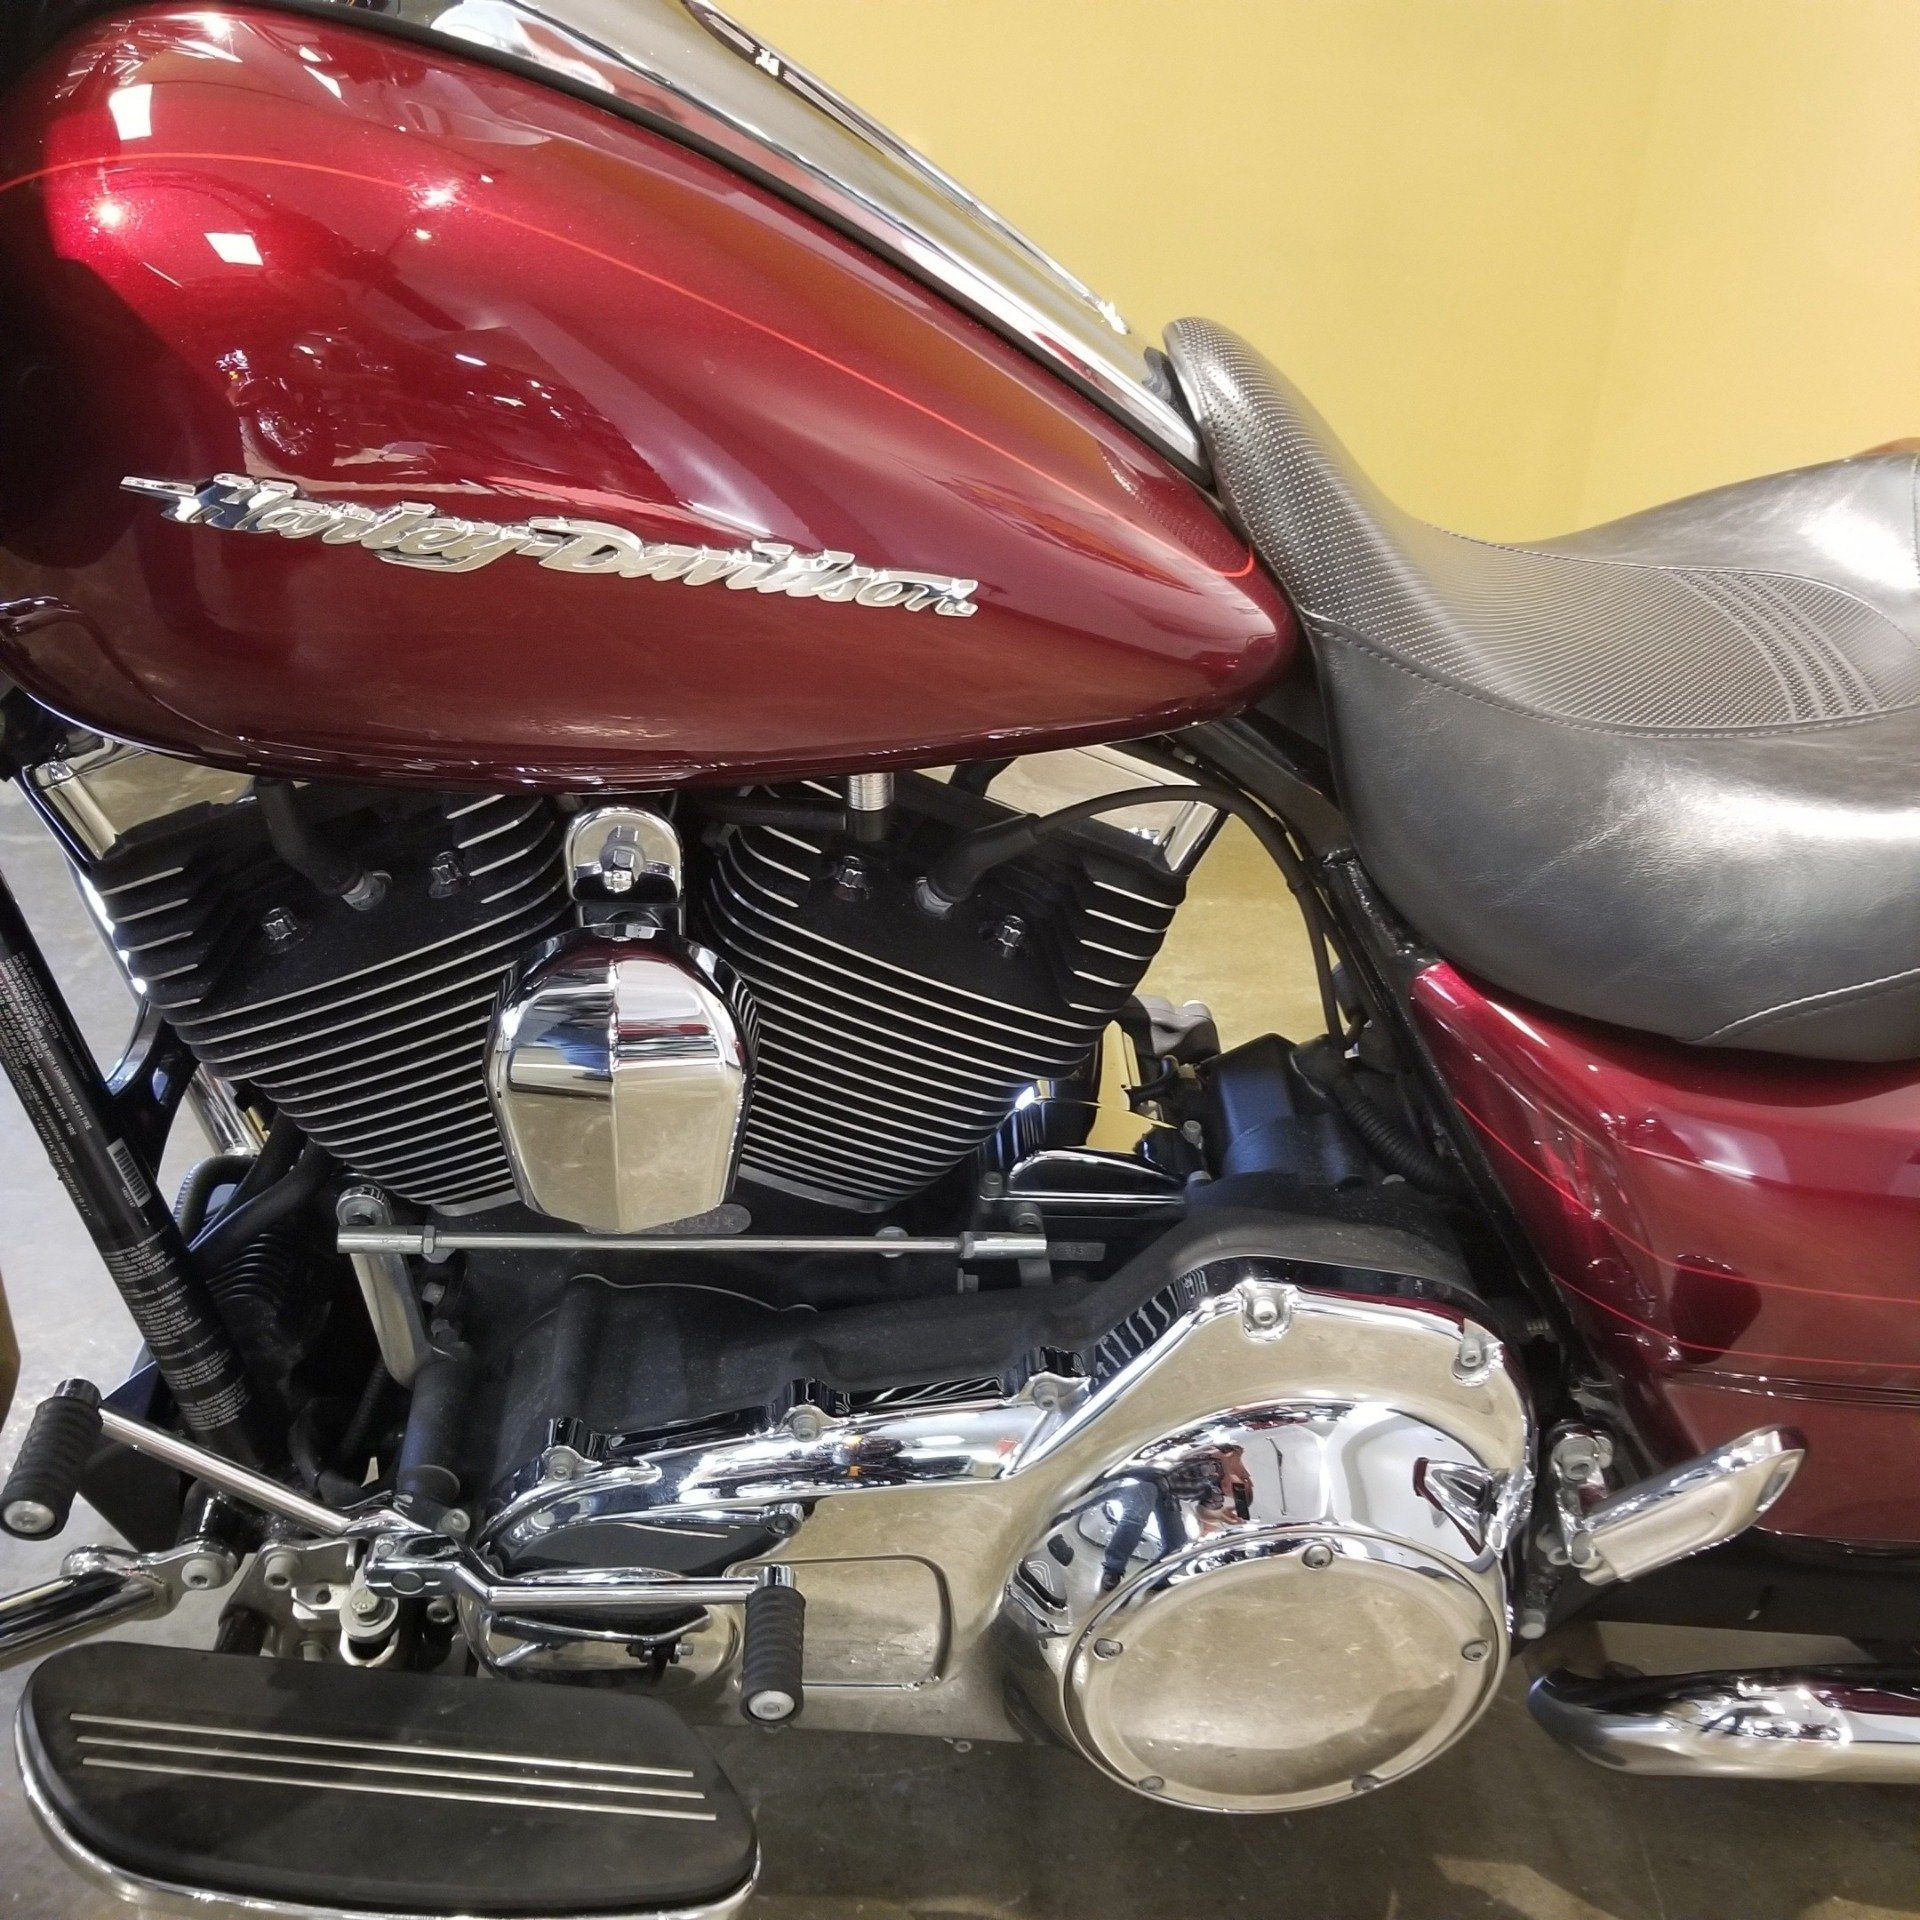 2016 Harley-Davidson Road Glide® Special in Mentor, Ohio - Photo 10